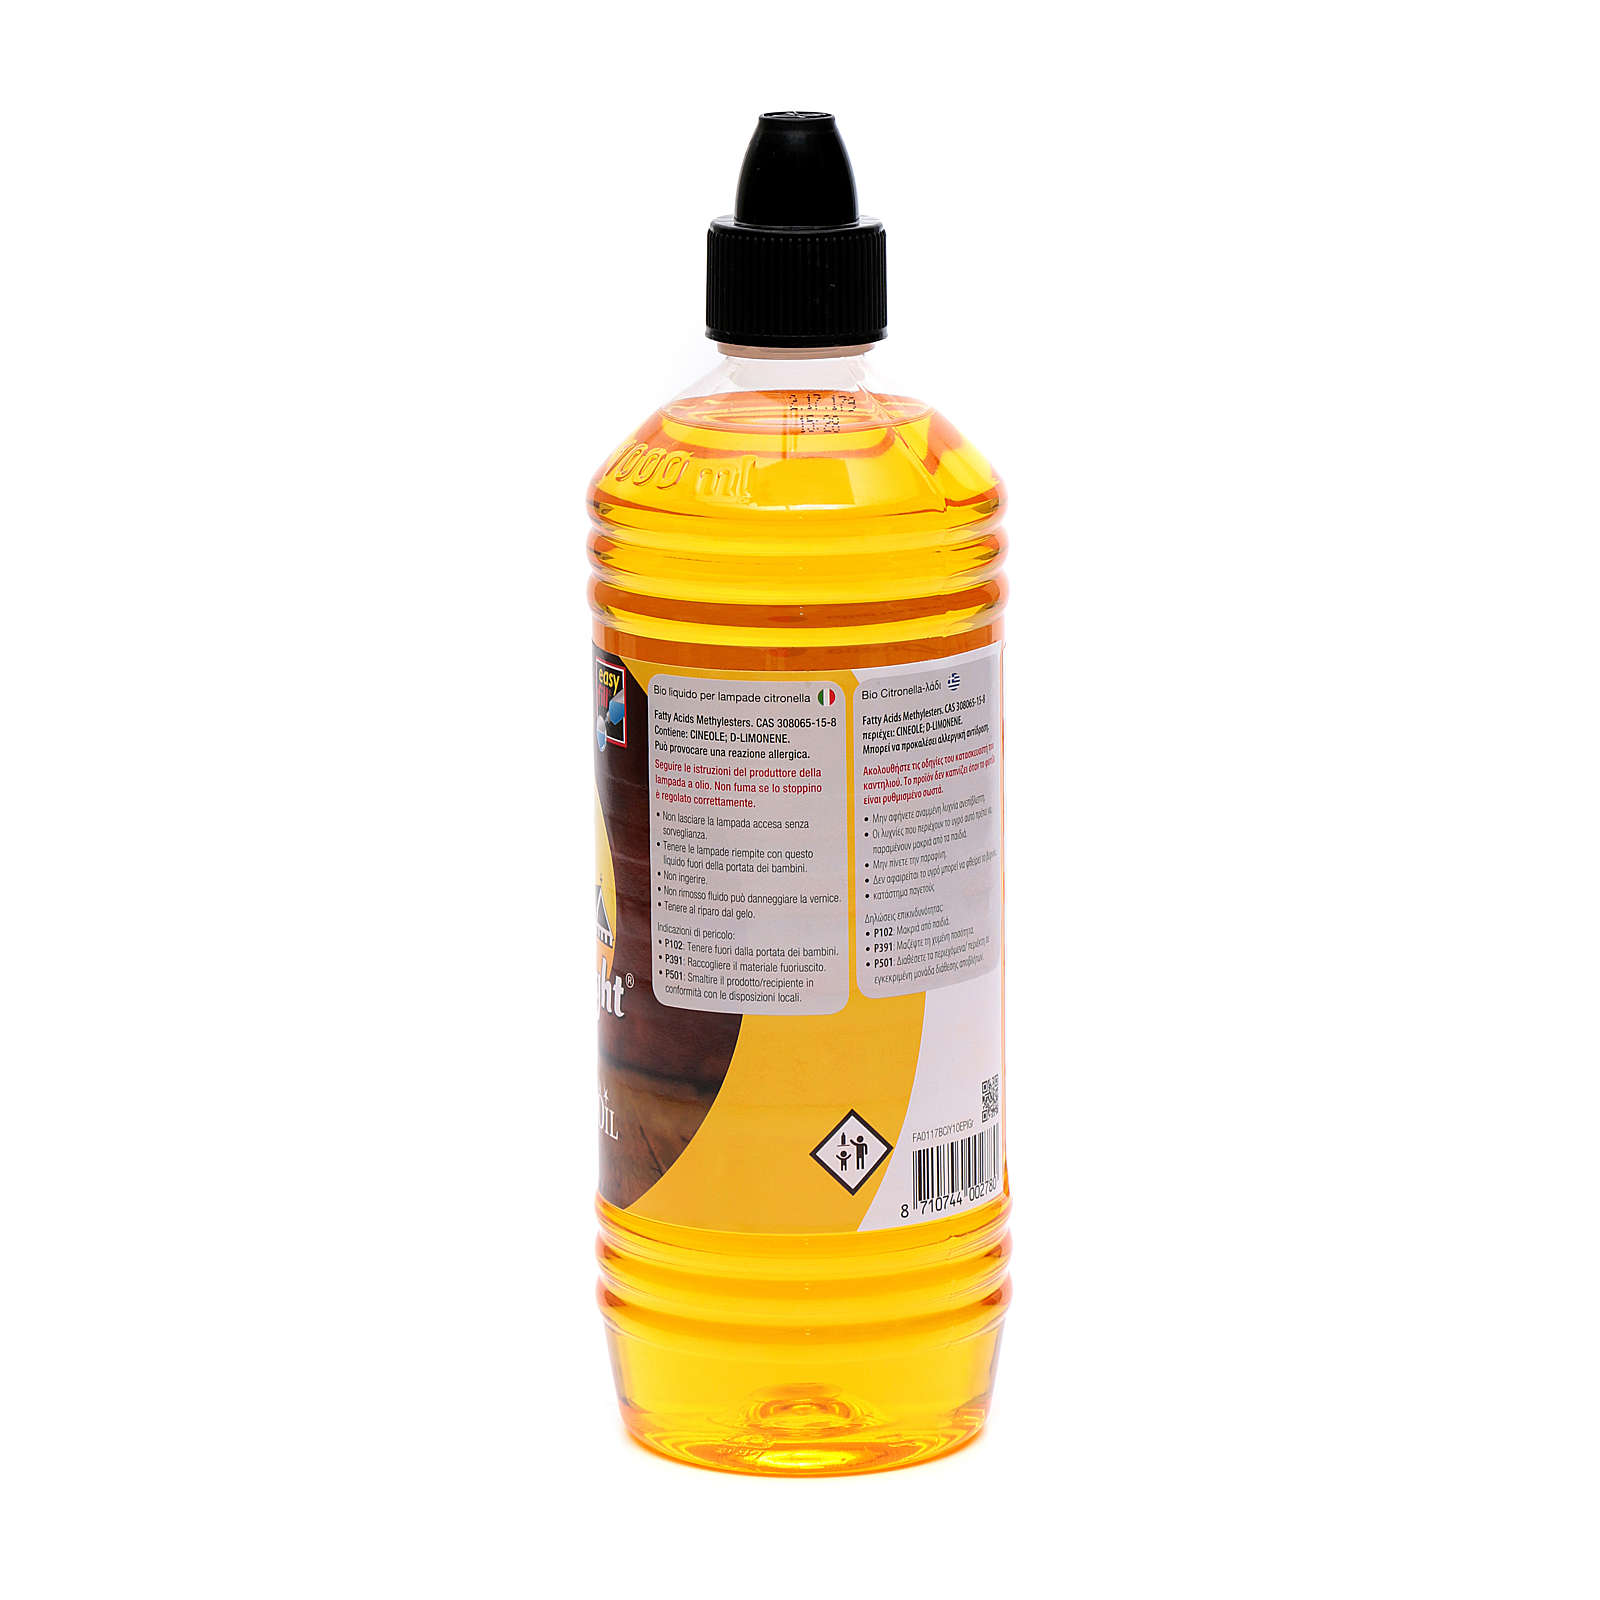 Citrolamp vegetal liquid wax 1 litre 3